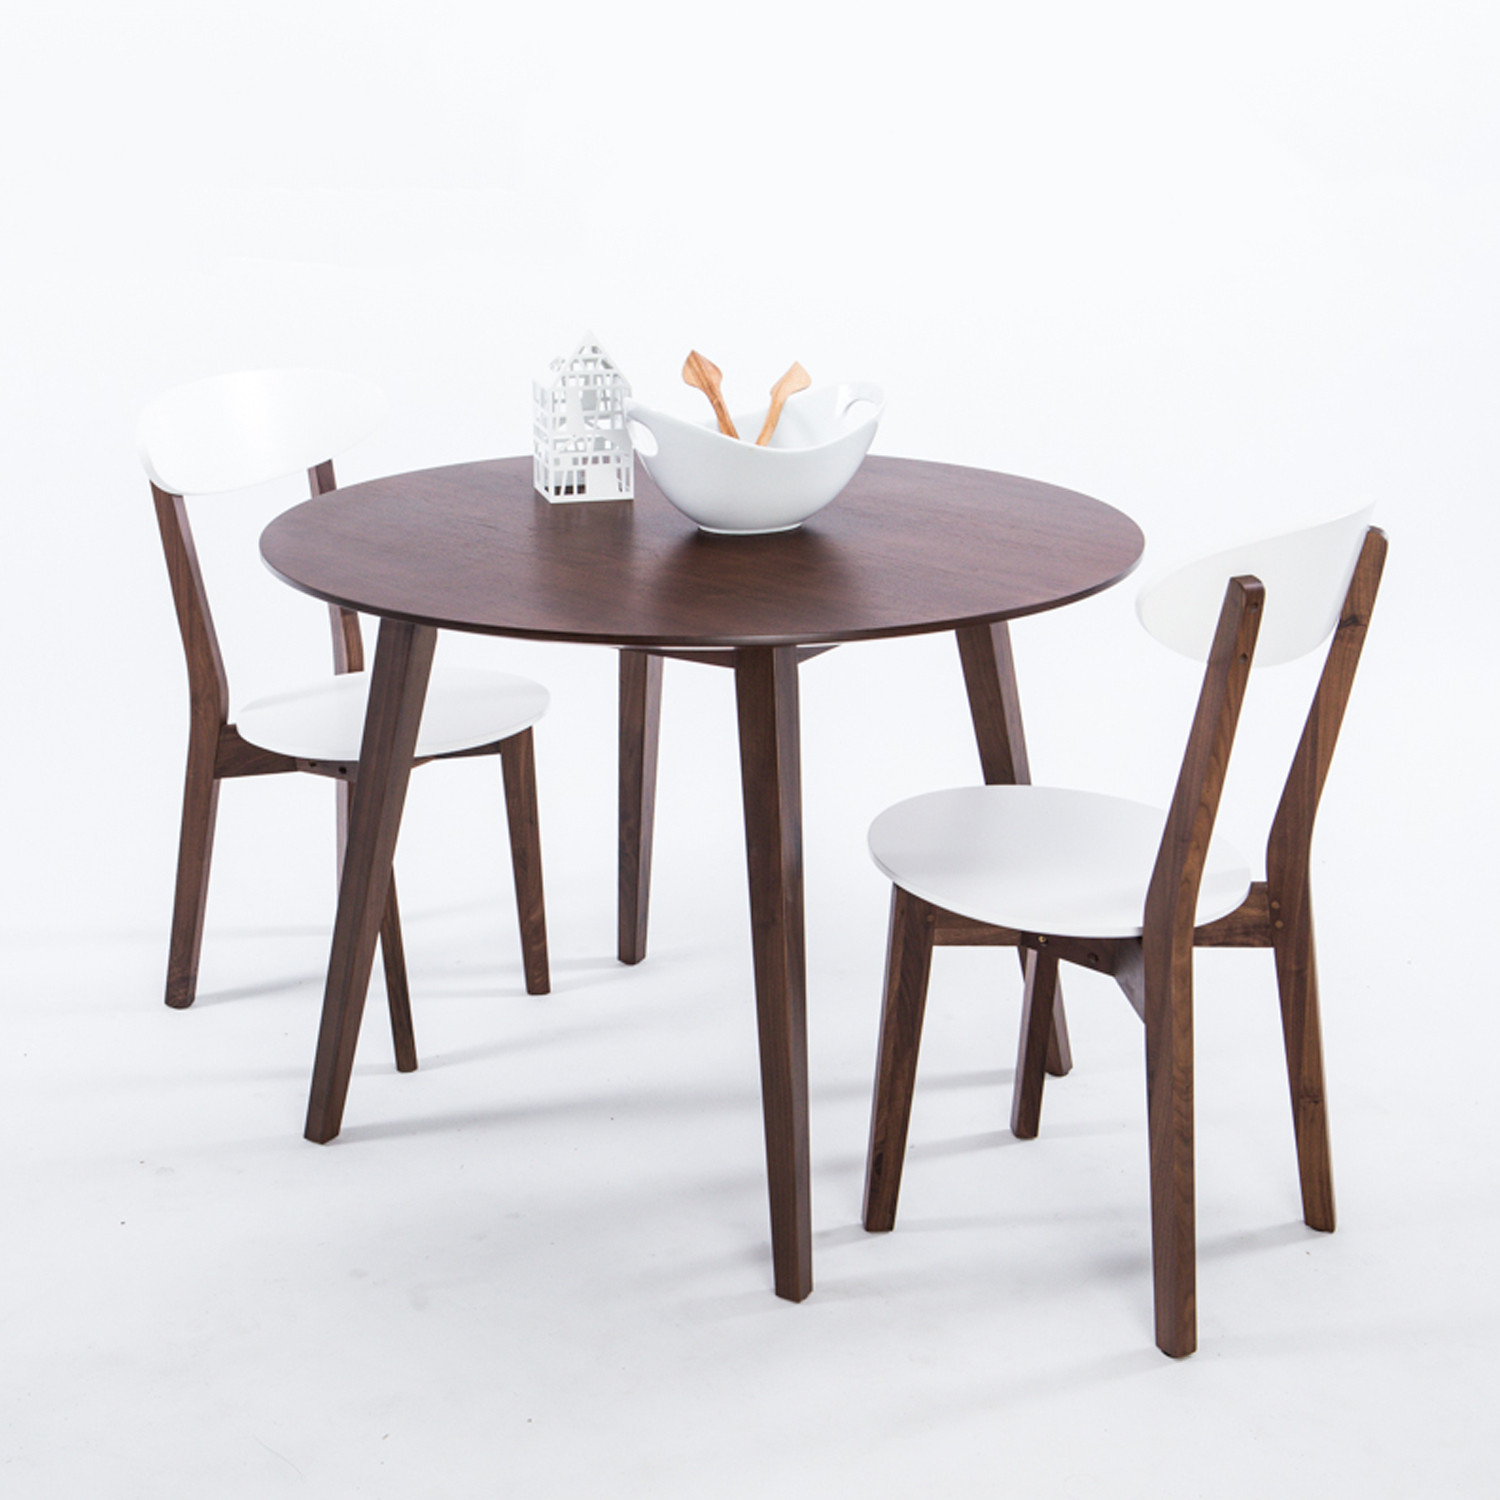 walnut round dining table furniture maison touch of modern. Black Bedroom Furniture Sets. Home Design Ideas